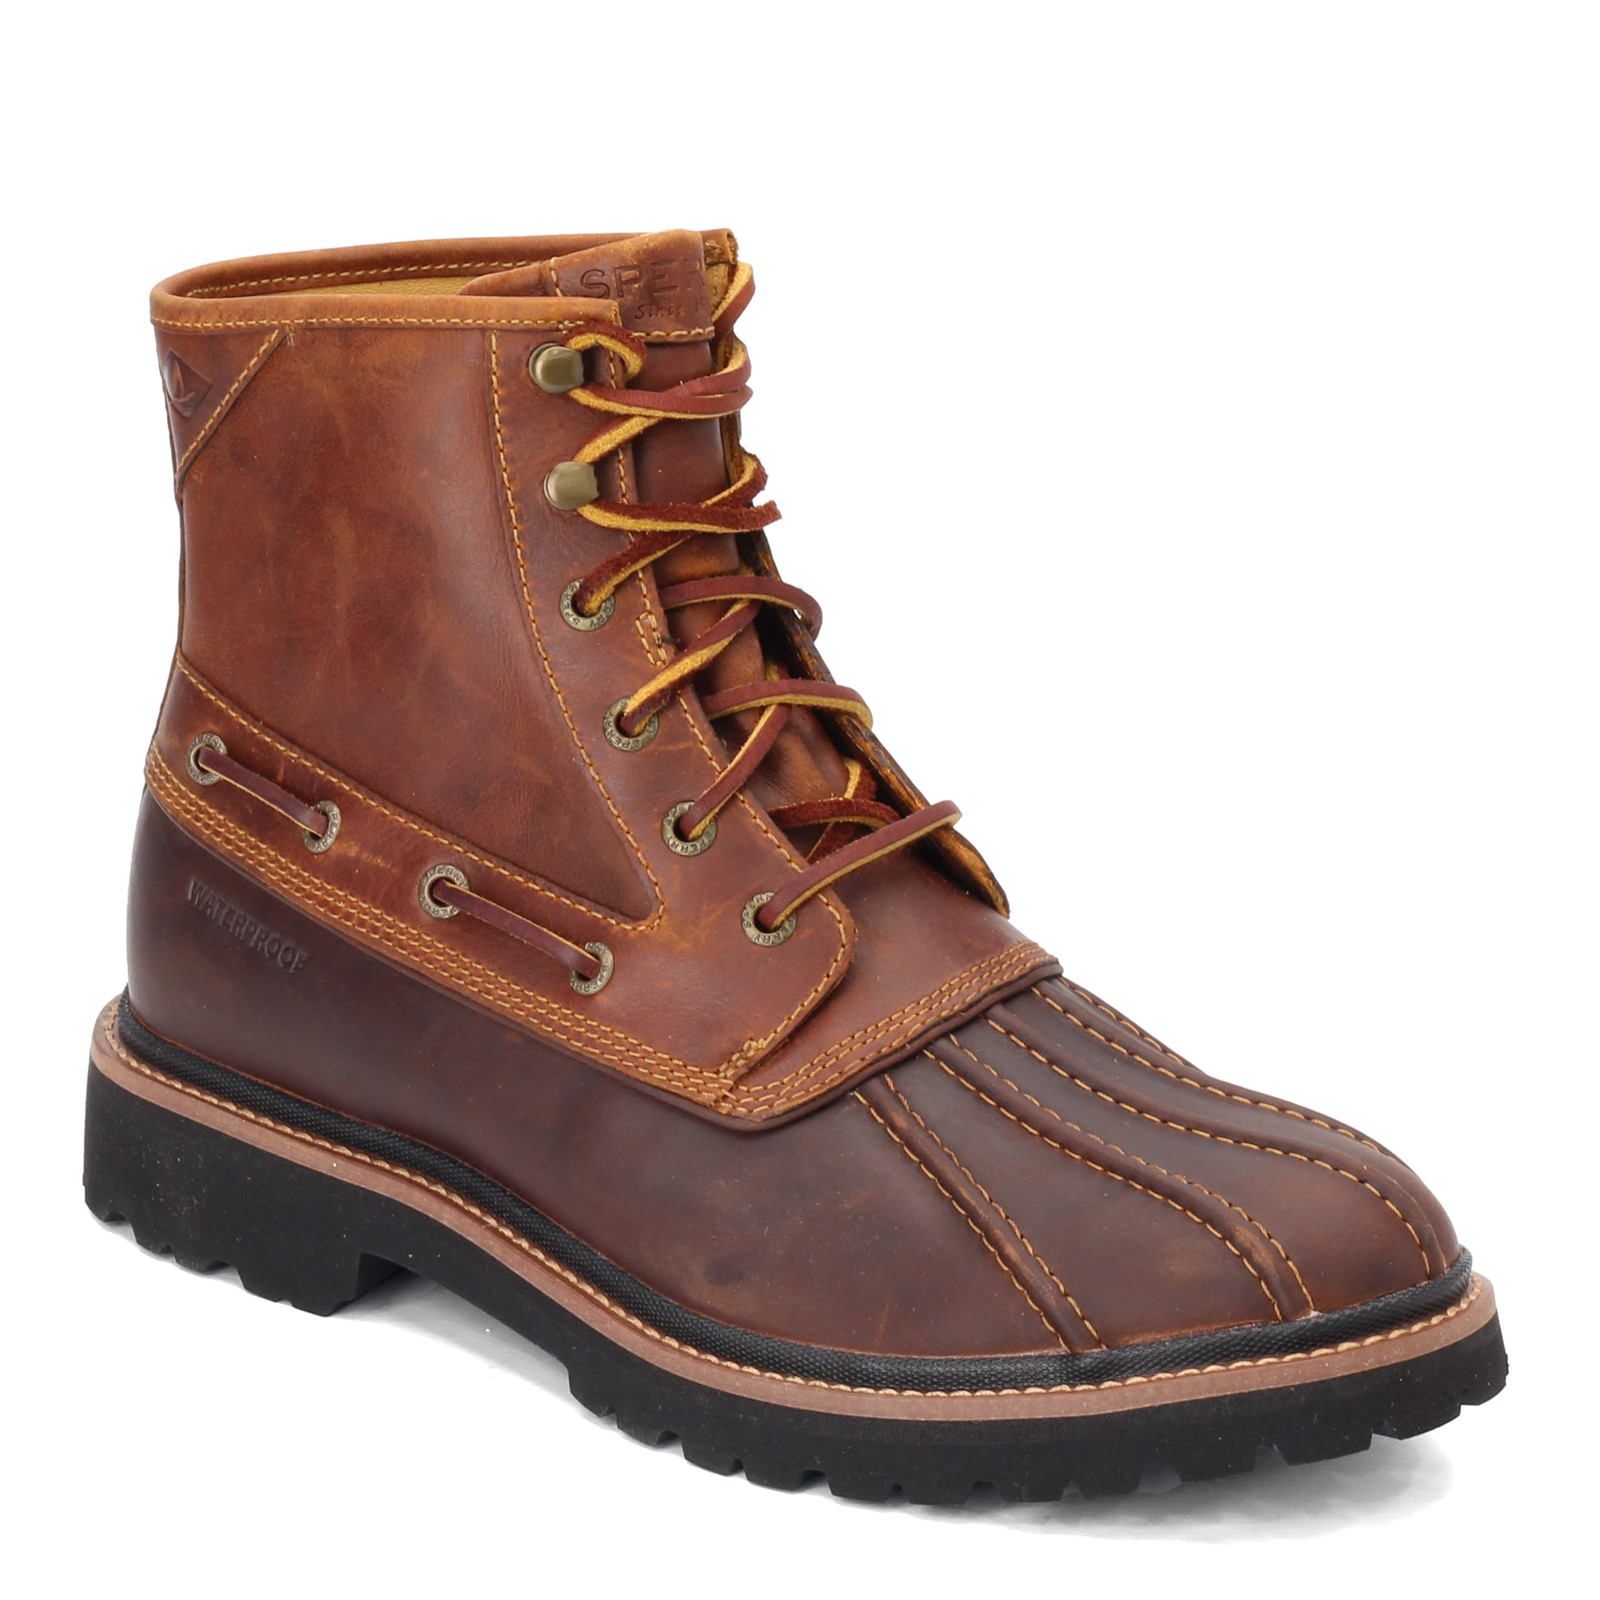 Men's Sperry, Gold Cup Lug Duck Boots